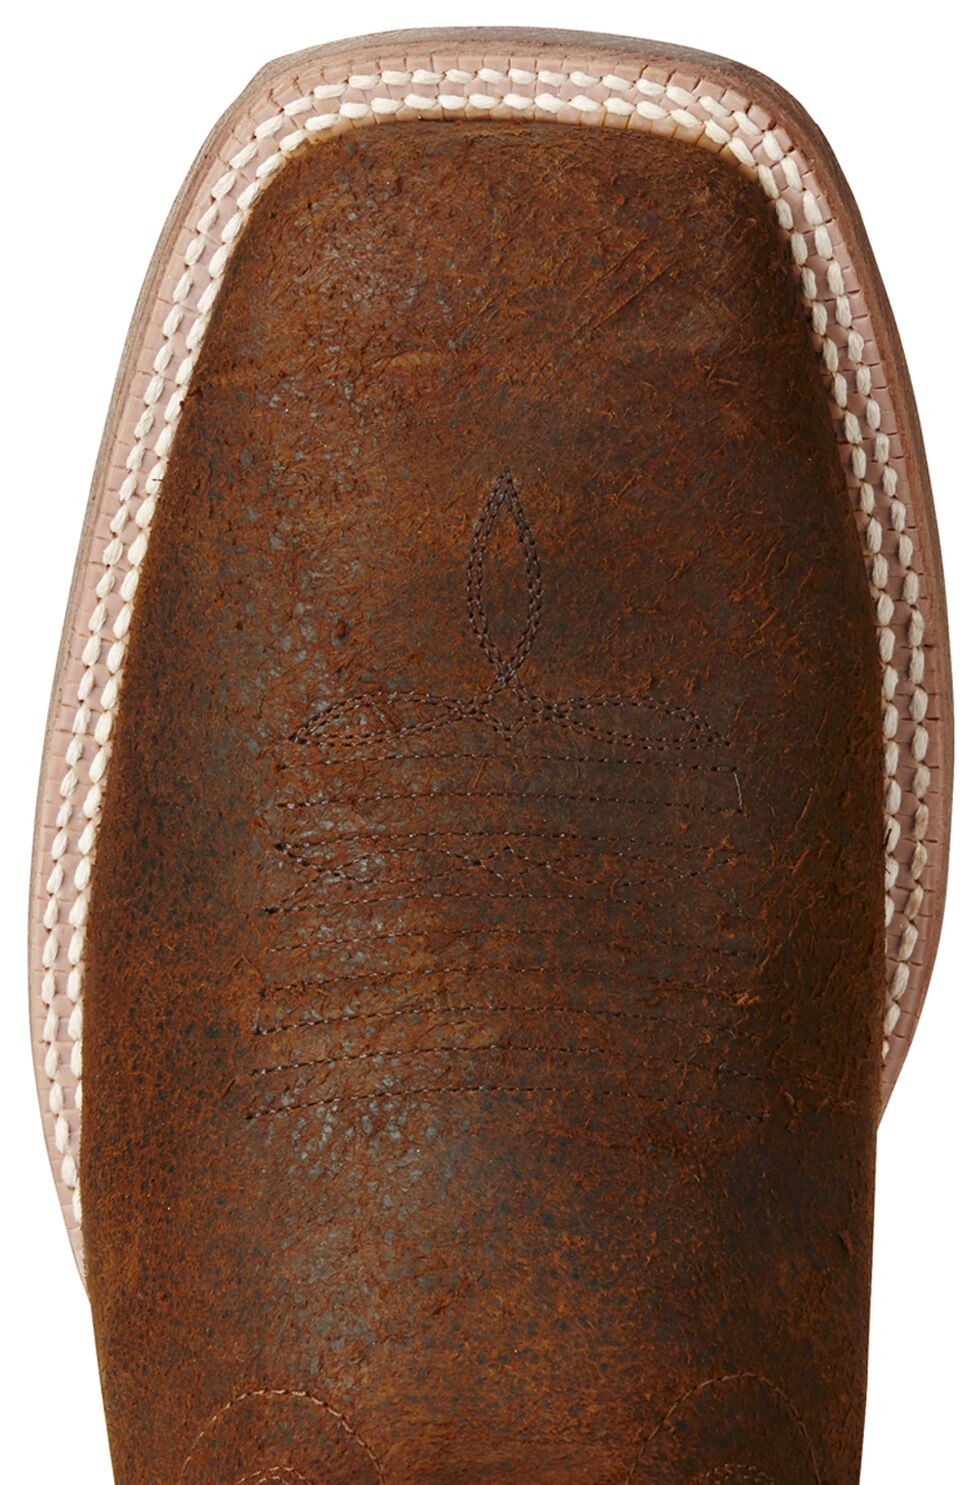 Ariat Men's Circuit Hazer Boots - Wide Square Toe, Brown, hi-res